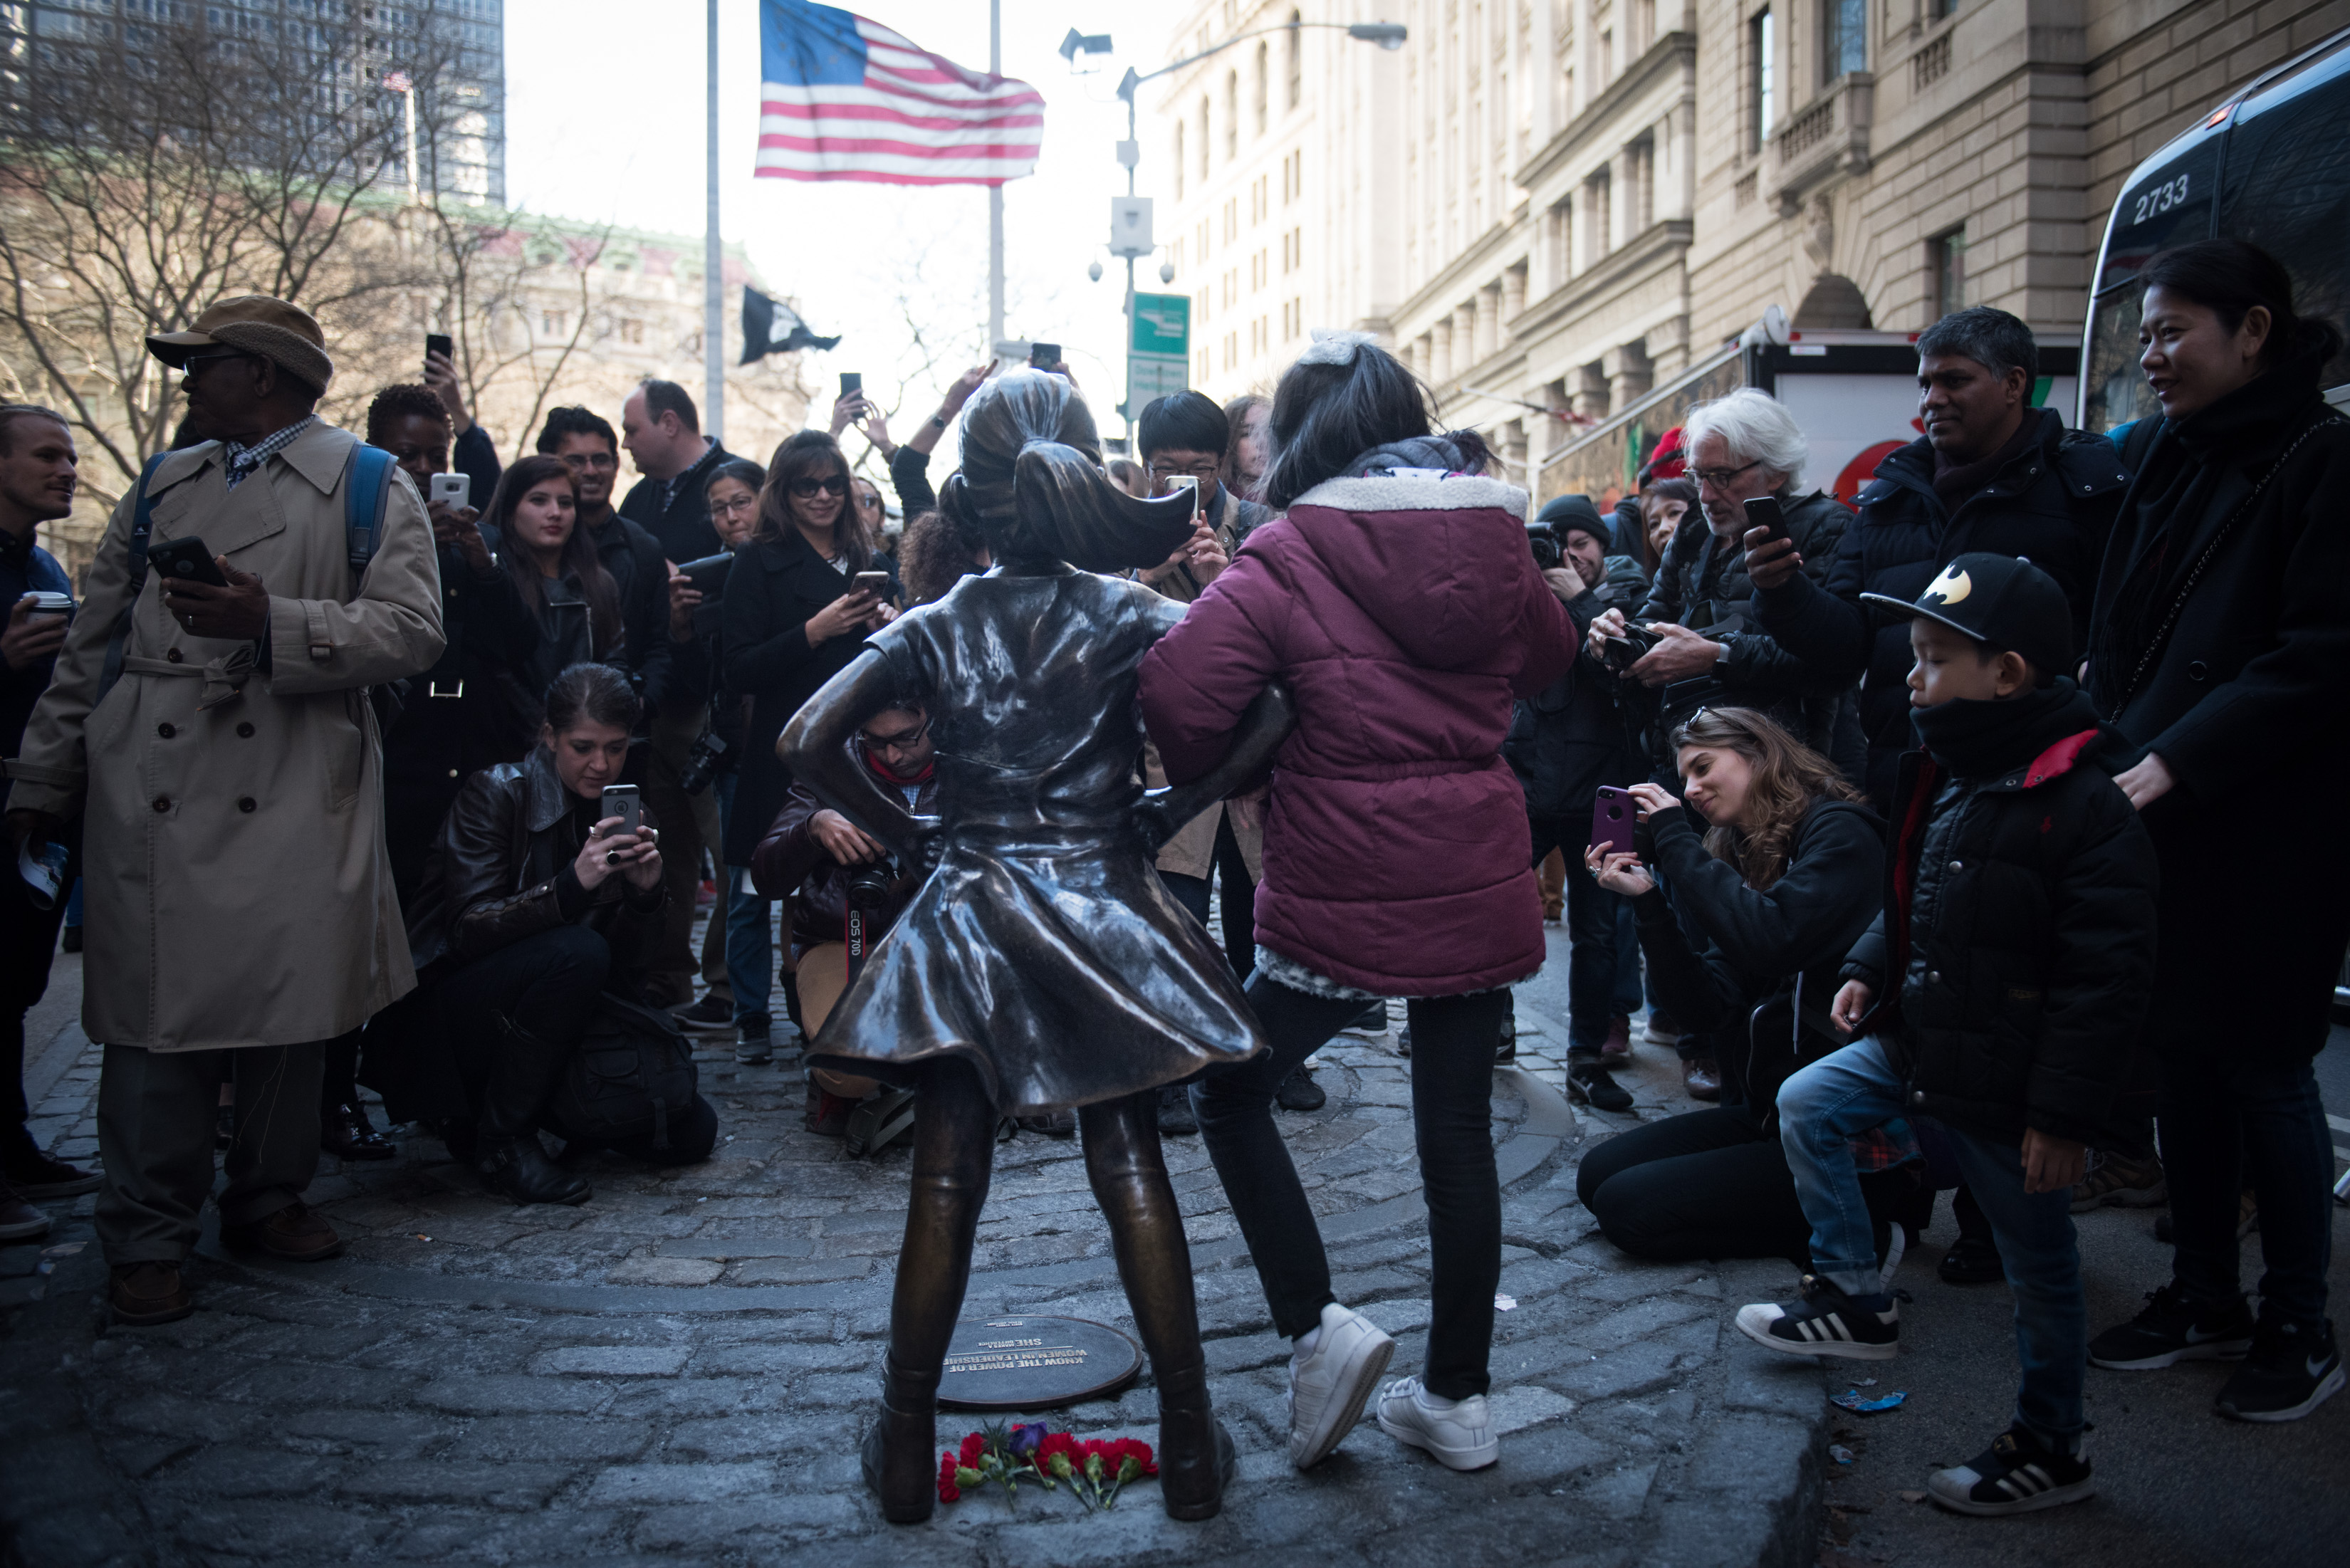 Fearless Girl statue at Bowling Green, which was installed to celebrate International Women's Day on Wednesday, March 8, 2017. Michael Appleton/Mayoral Photography Office